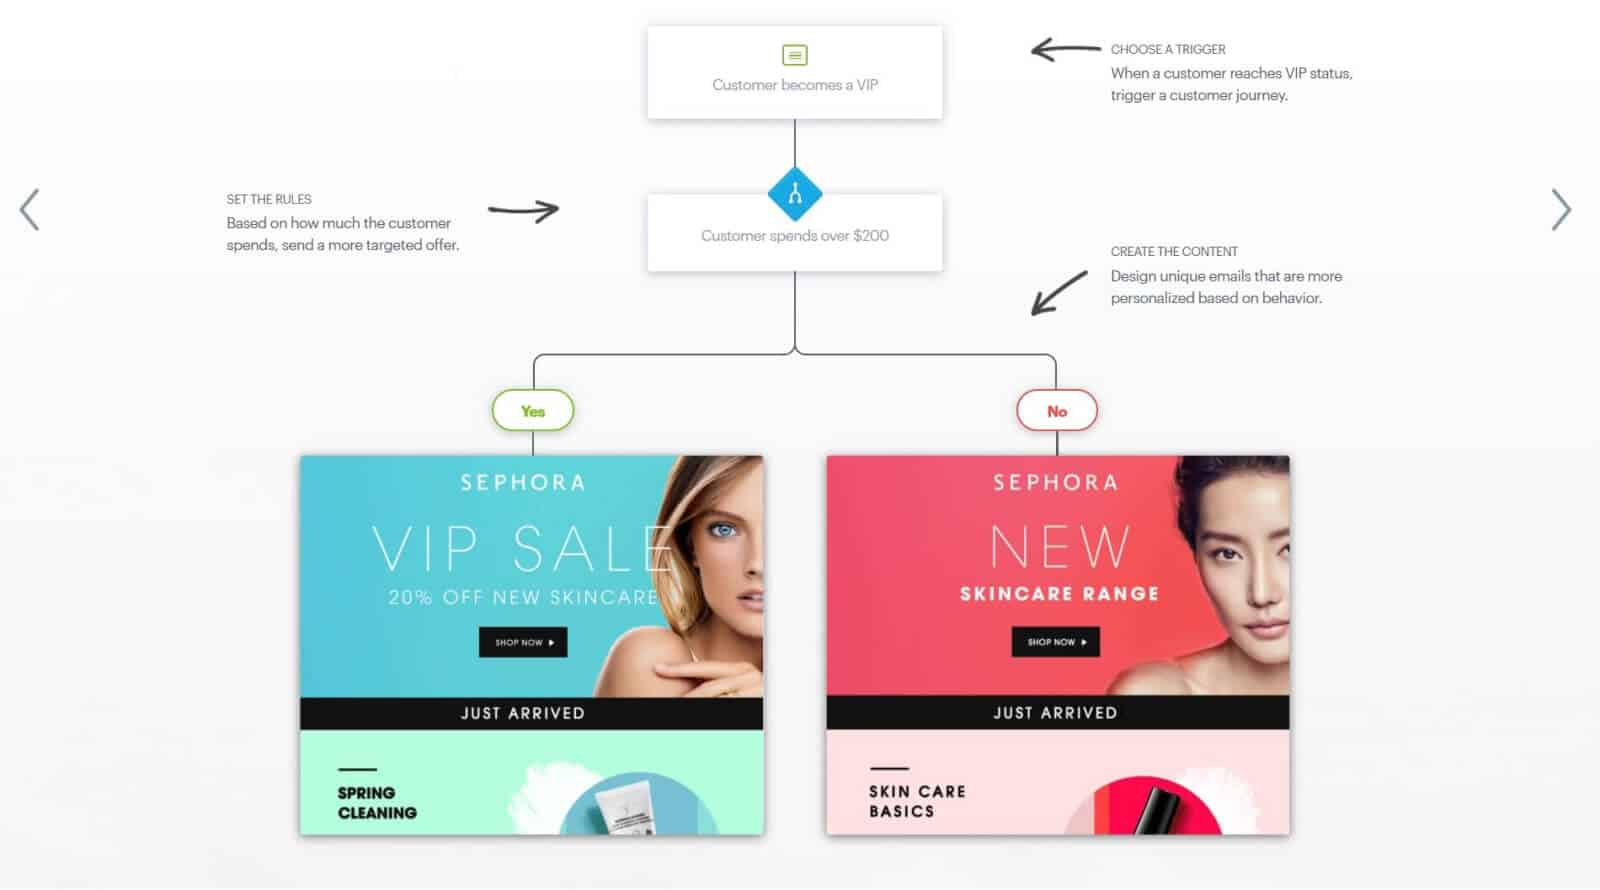 Use behavioral triggers to personalize your emails